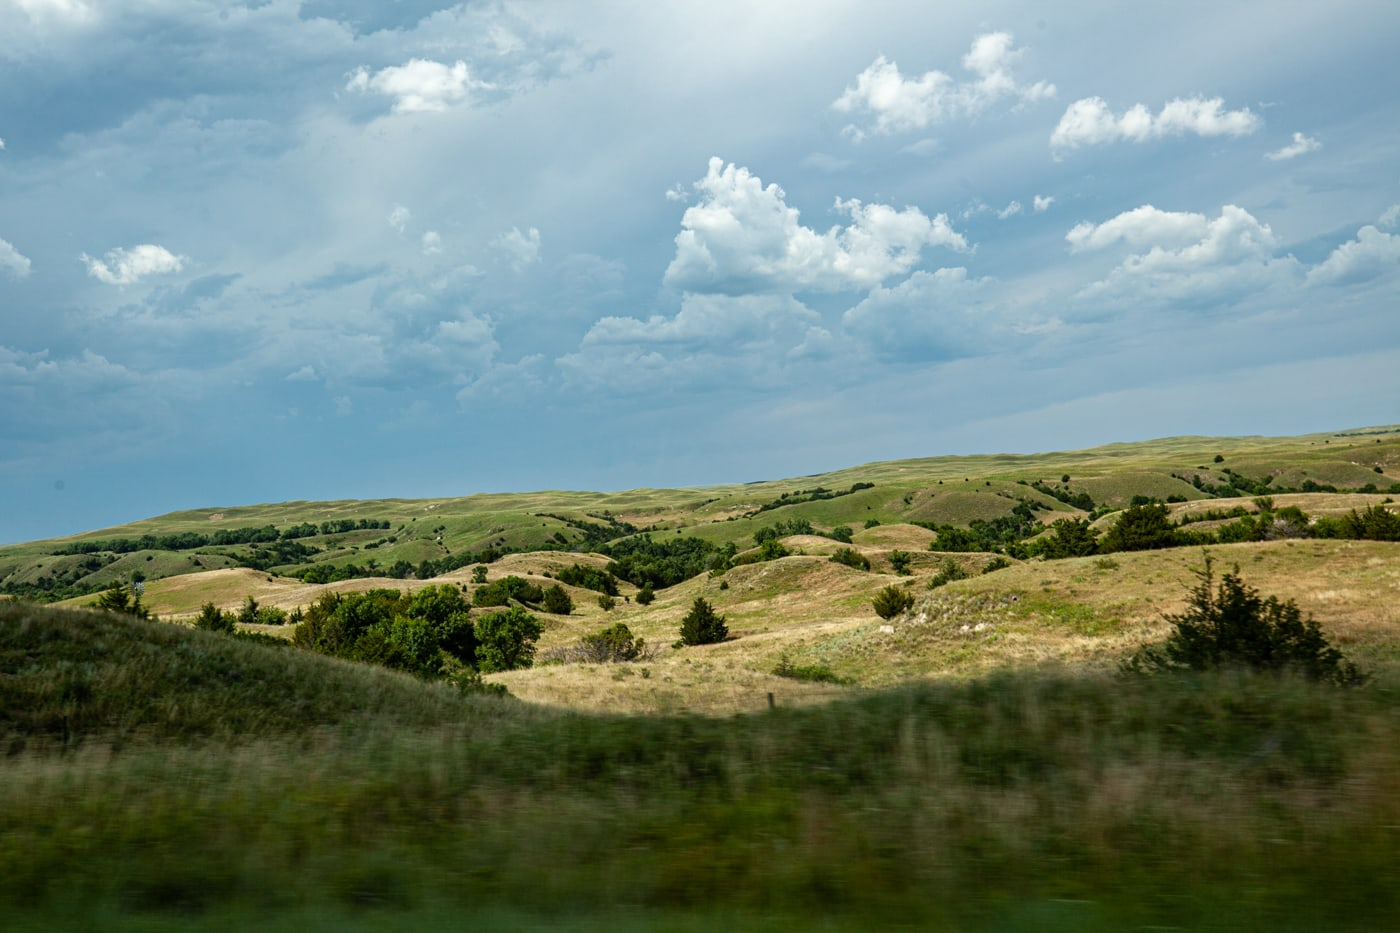 Driving the Nebraska Sandhills Journey Scenic Byway